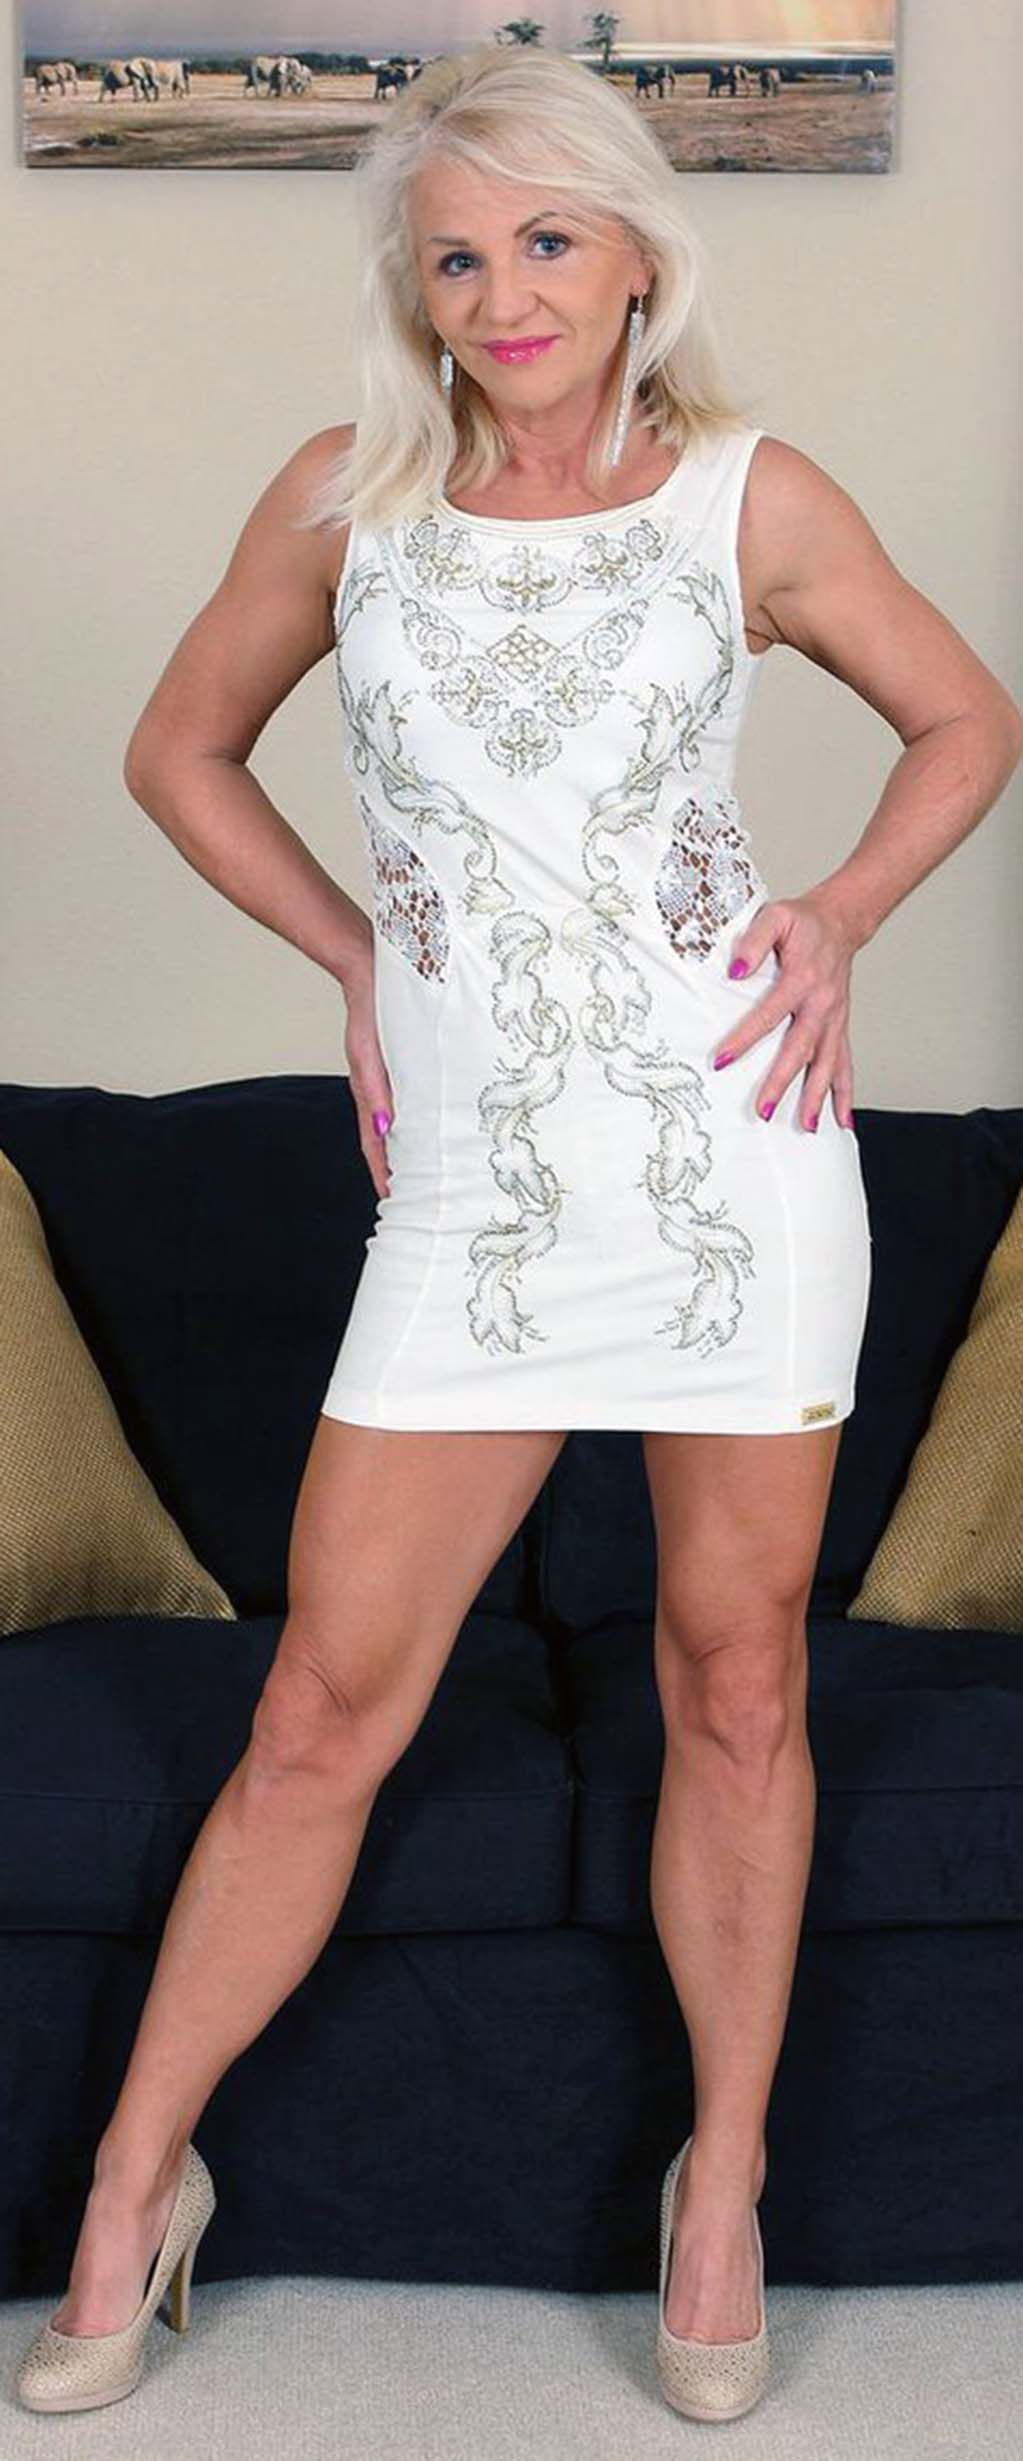 don't give kostenlos haarige Puma porno young and